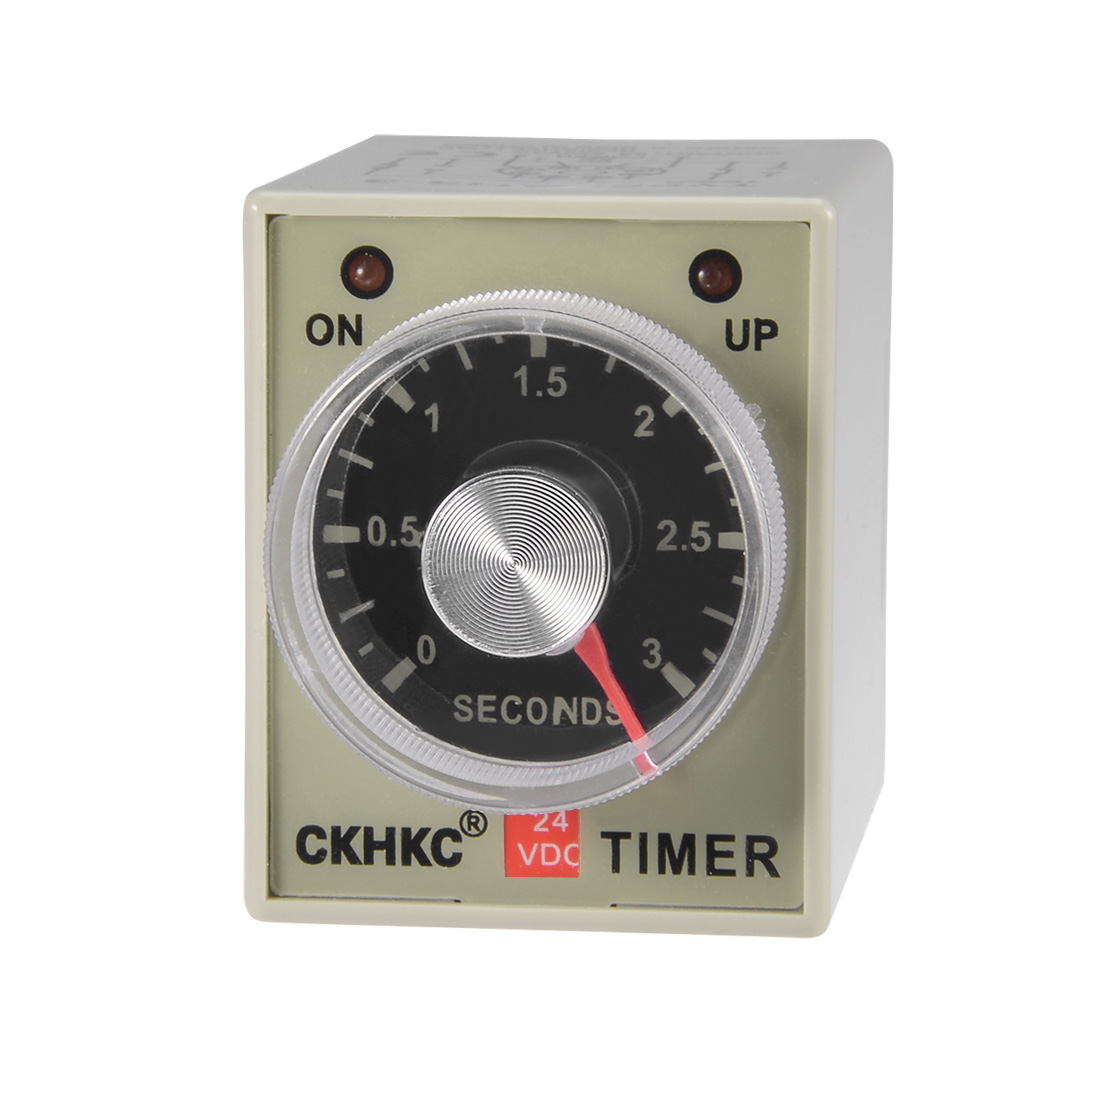 DC24V 3S 8 Terminals Range Adjustable Delay Timer Time Relay AH3-2